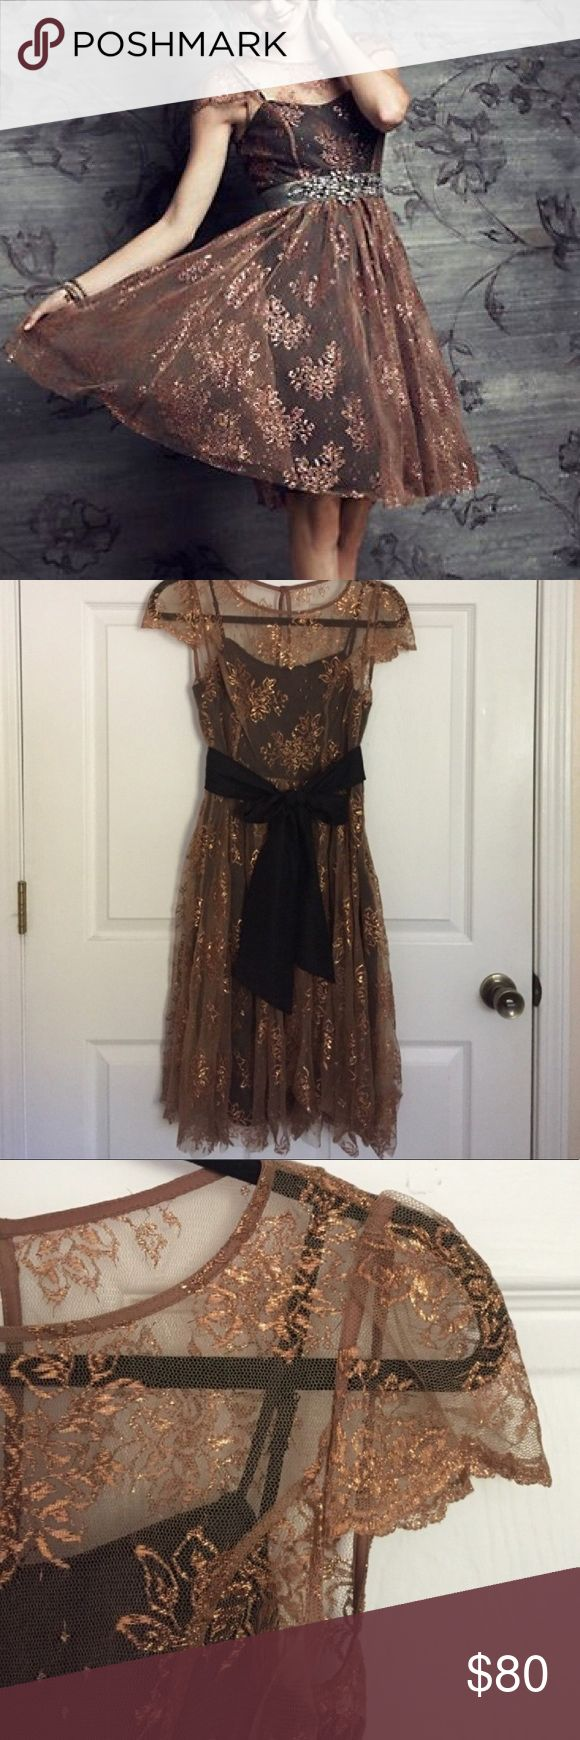 Anthropologie Gold Lace Dress Perfect condition! Bought this from another Posher but reselling because it's about half an inch too small across the chest. Fits perfectly everywhere else! (Mine does not come with the silver or black belt). Perfect anthropologie dress! Anthropologie Dresses Midi